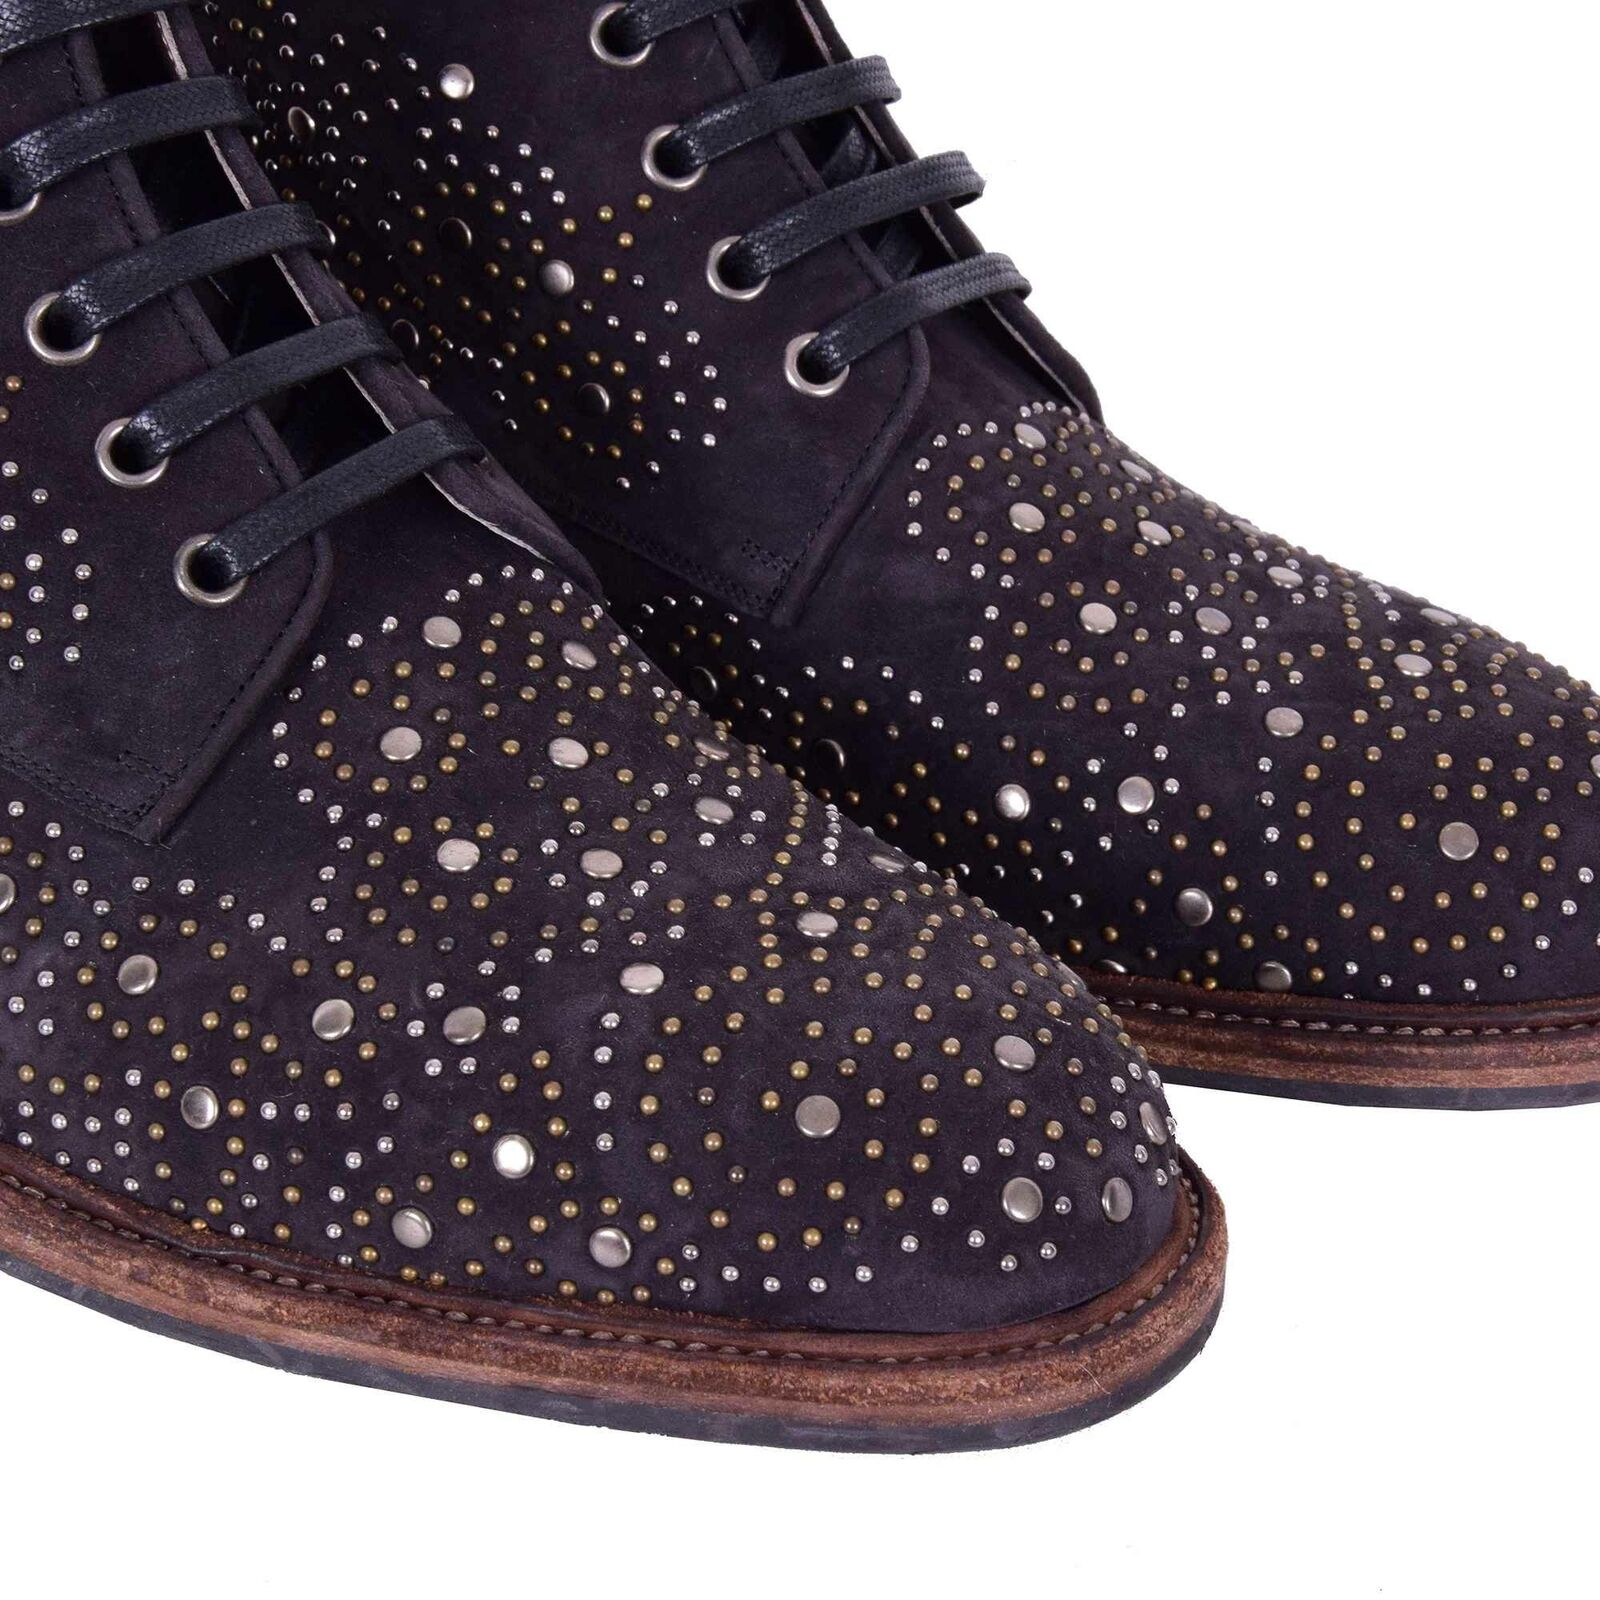 DOLCE & GABBANA Studded Suede Chelsea Ankle Boots MARSALA Brown 44 US 11 08160